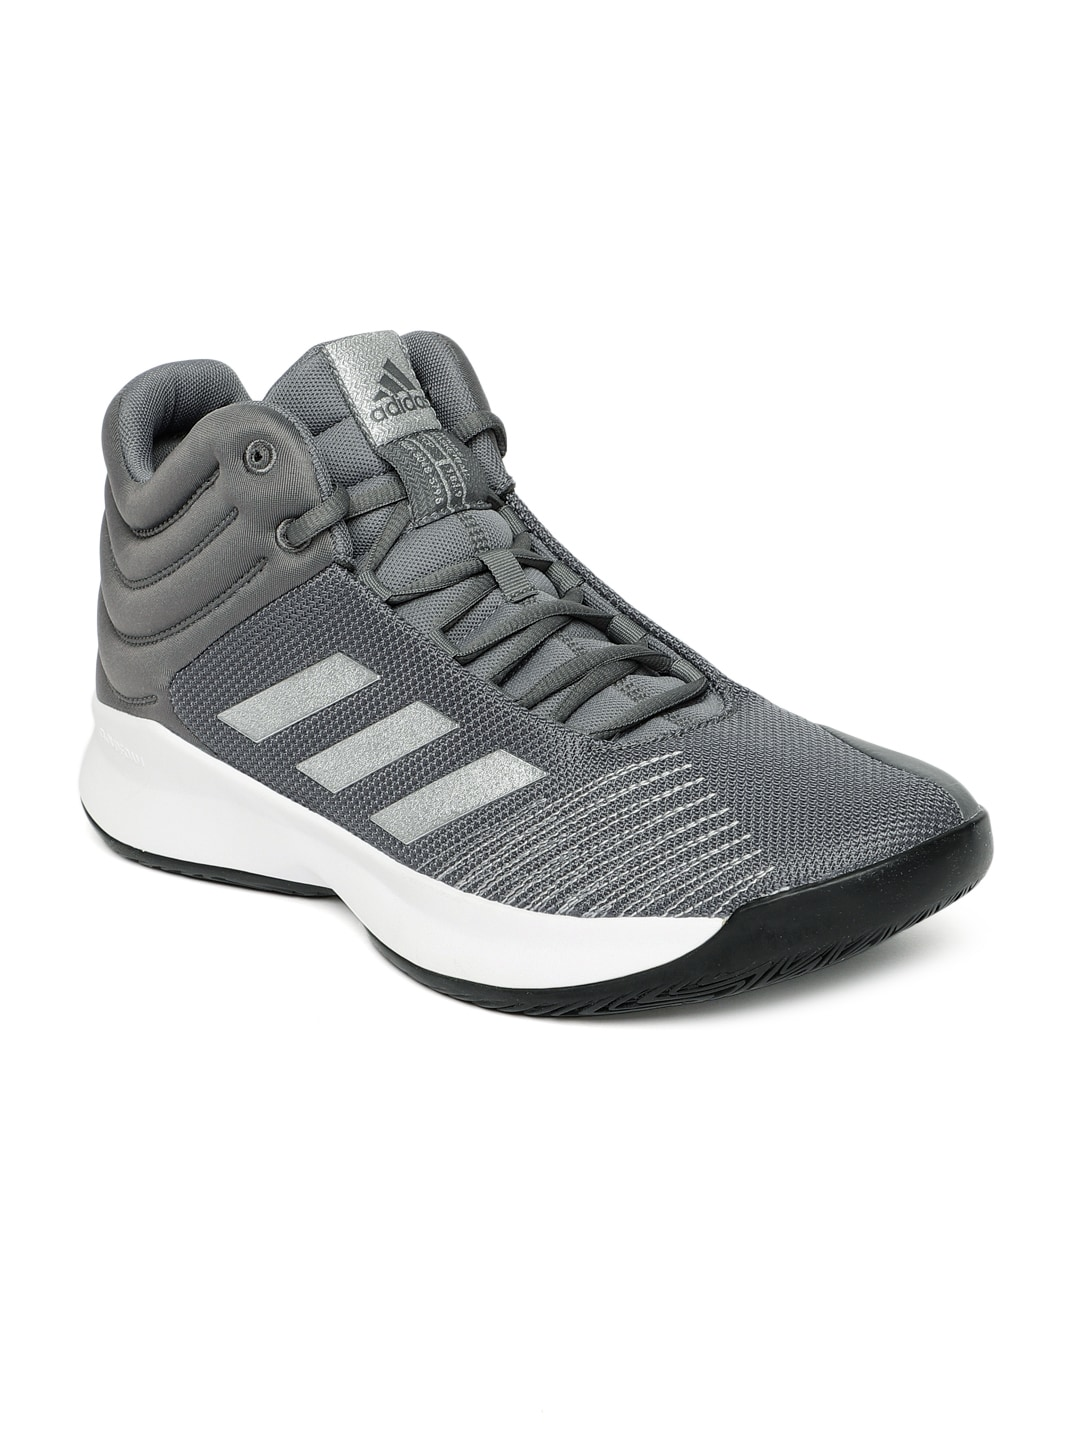 991a133733ce Men Adidas Basketball Sports Shoes - Buy Men Adidas Basketball Sports Shoes  online in India